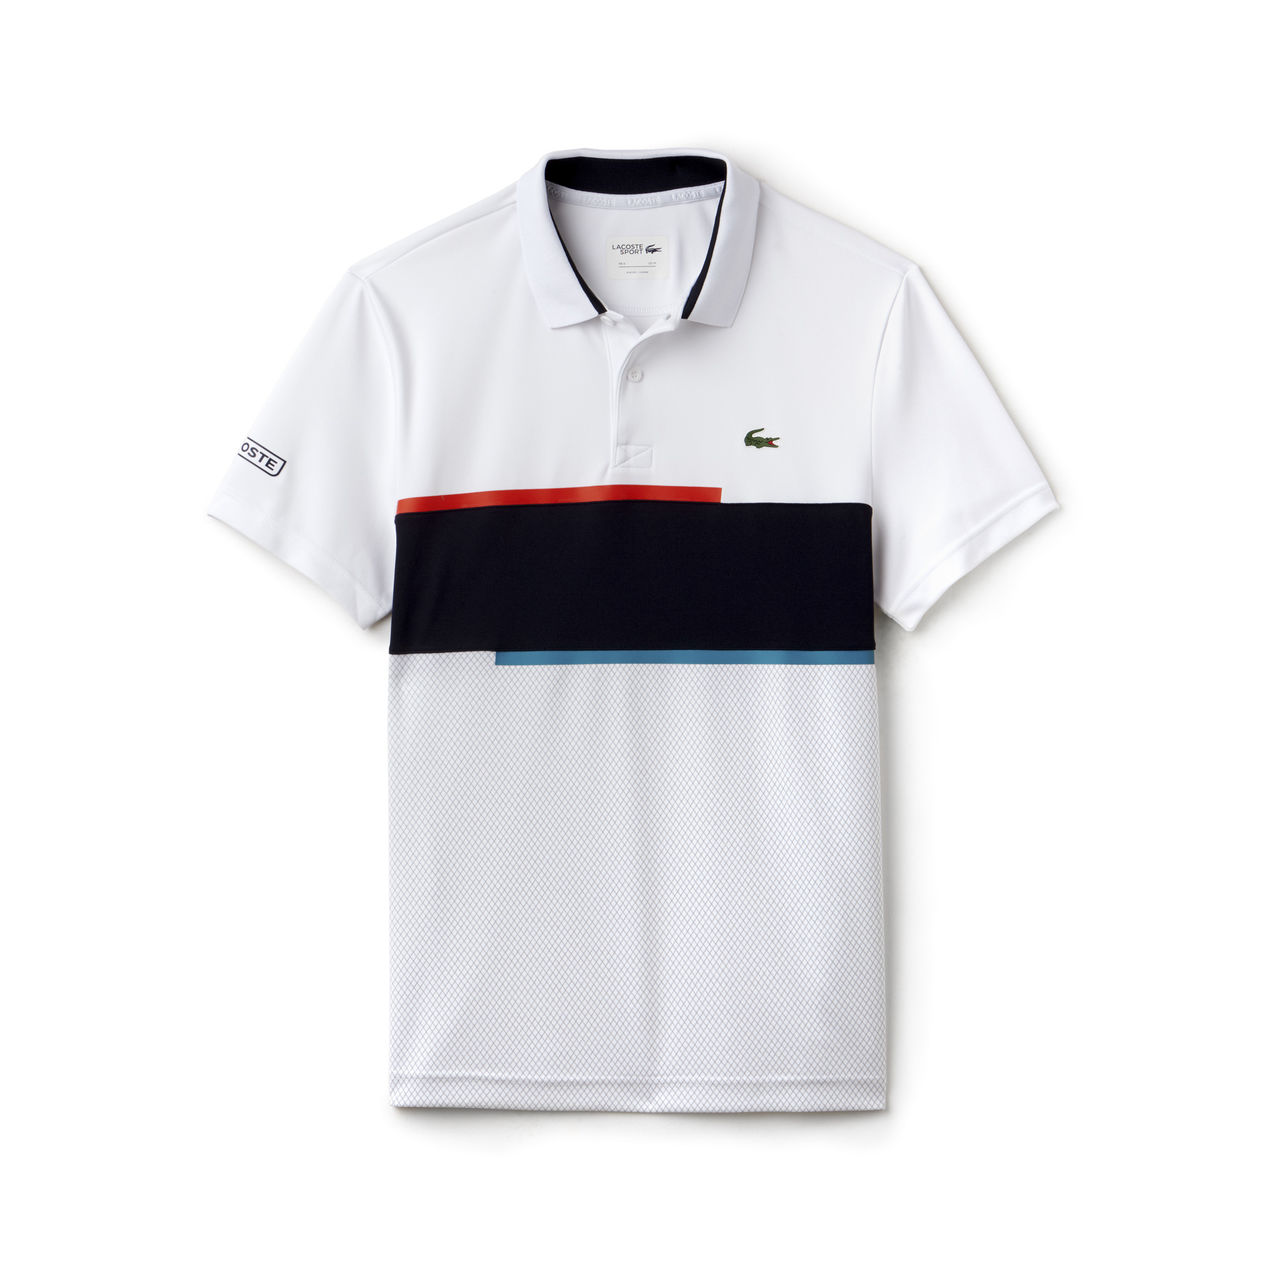 064f638bf3 Camisa Polo Lacoste DH2071 Branco